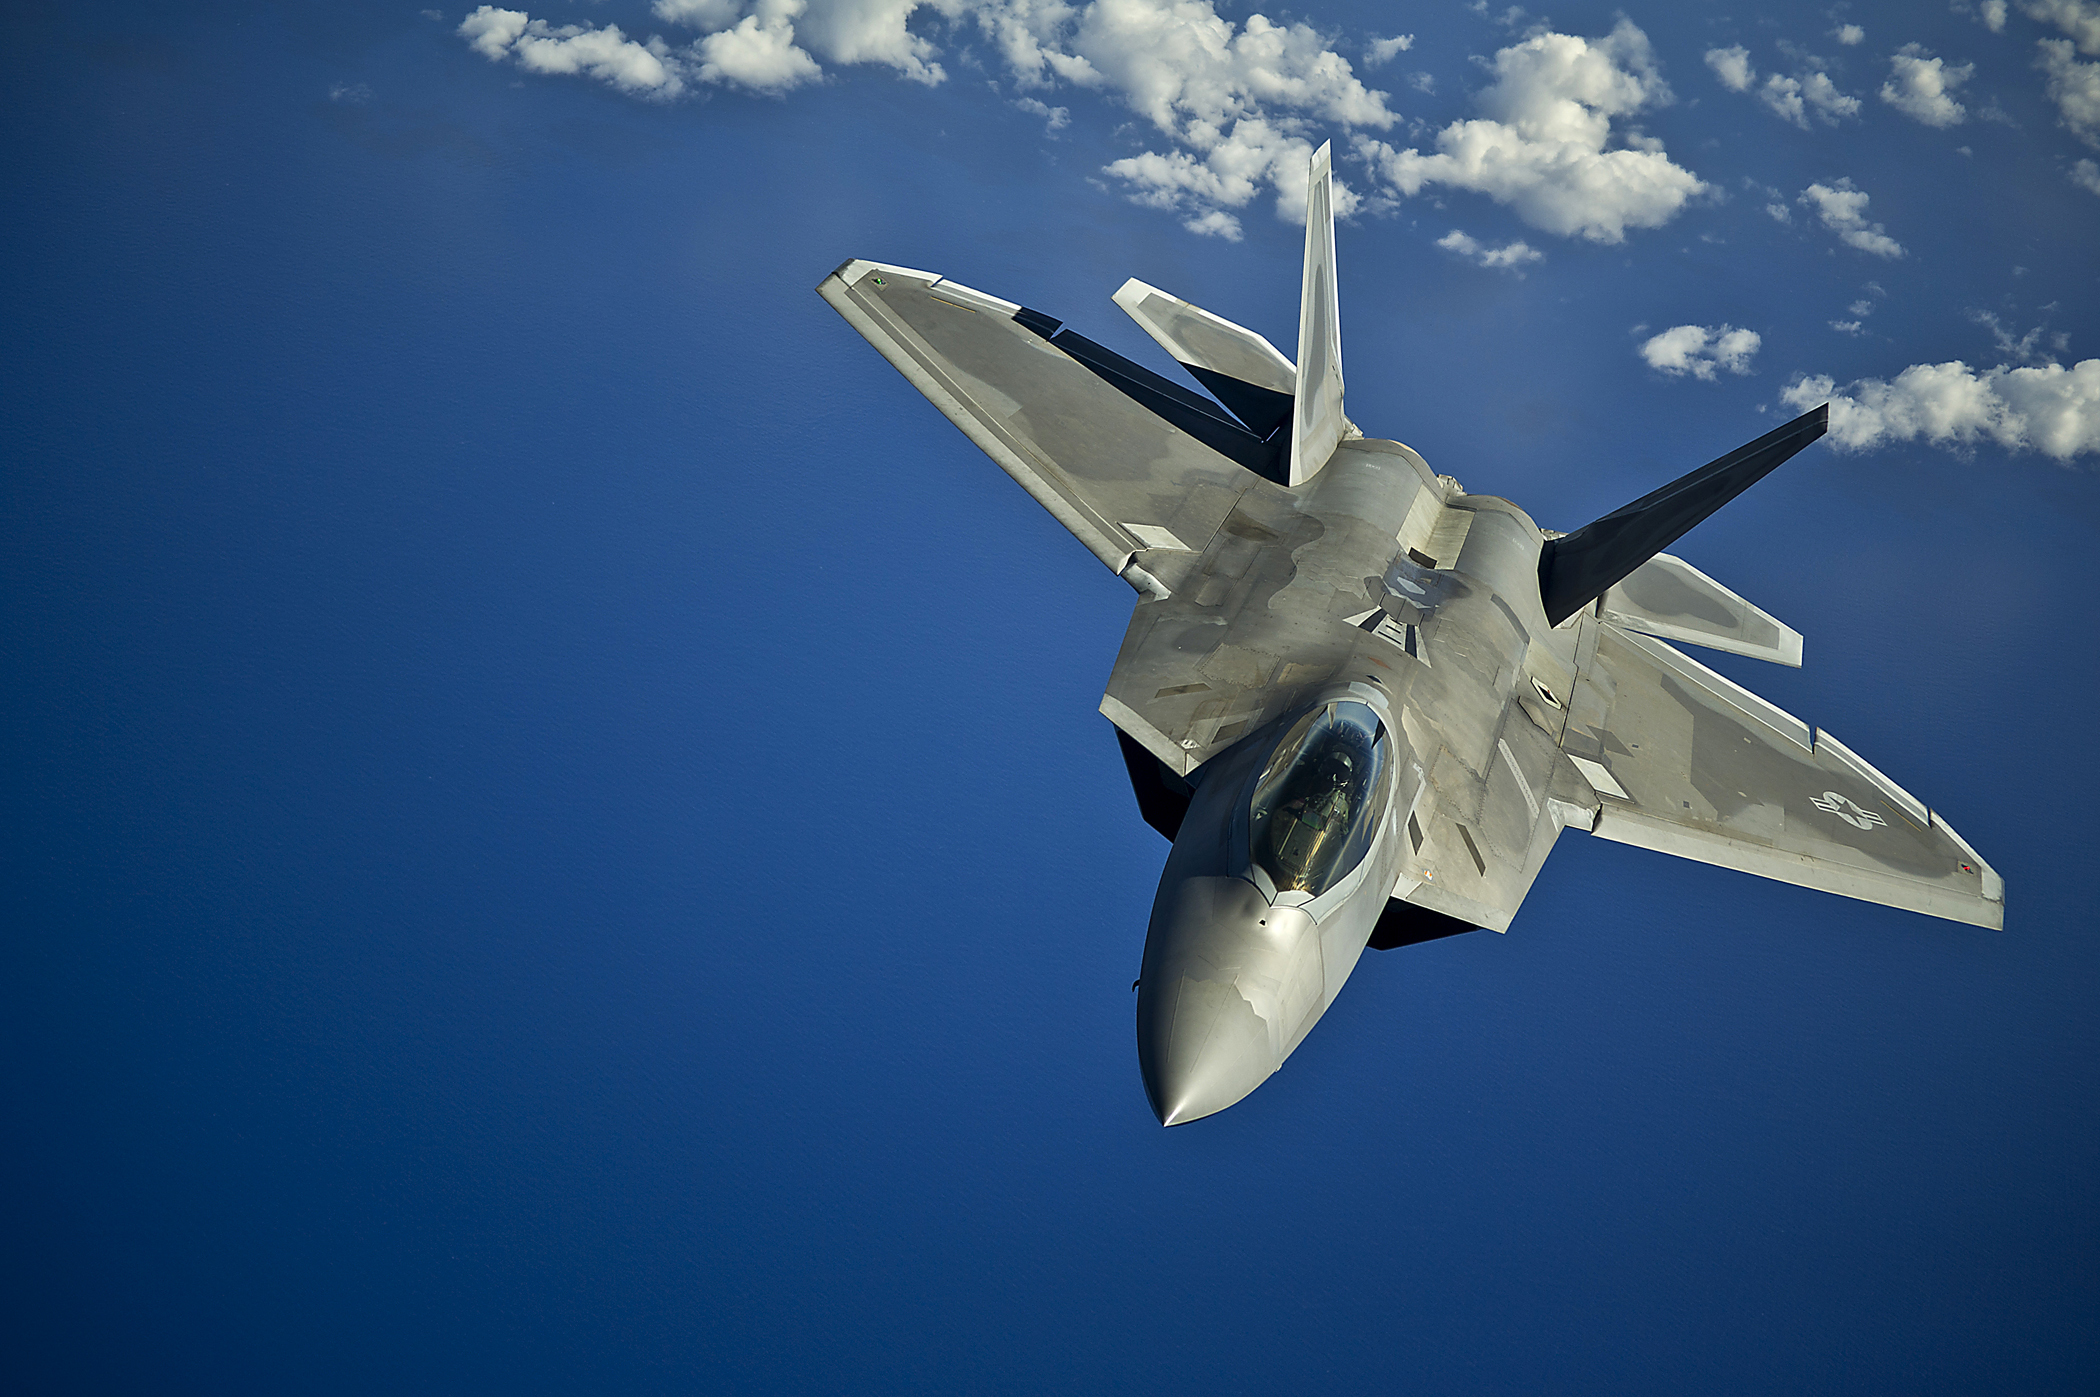 F-22 Raptor over the Pacific